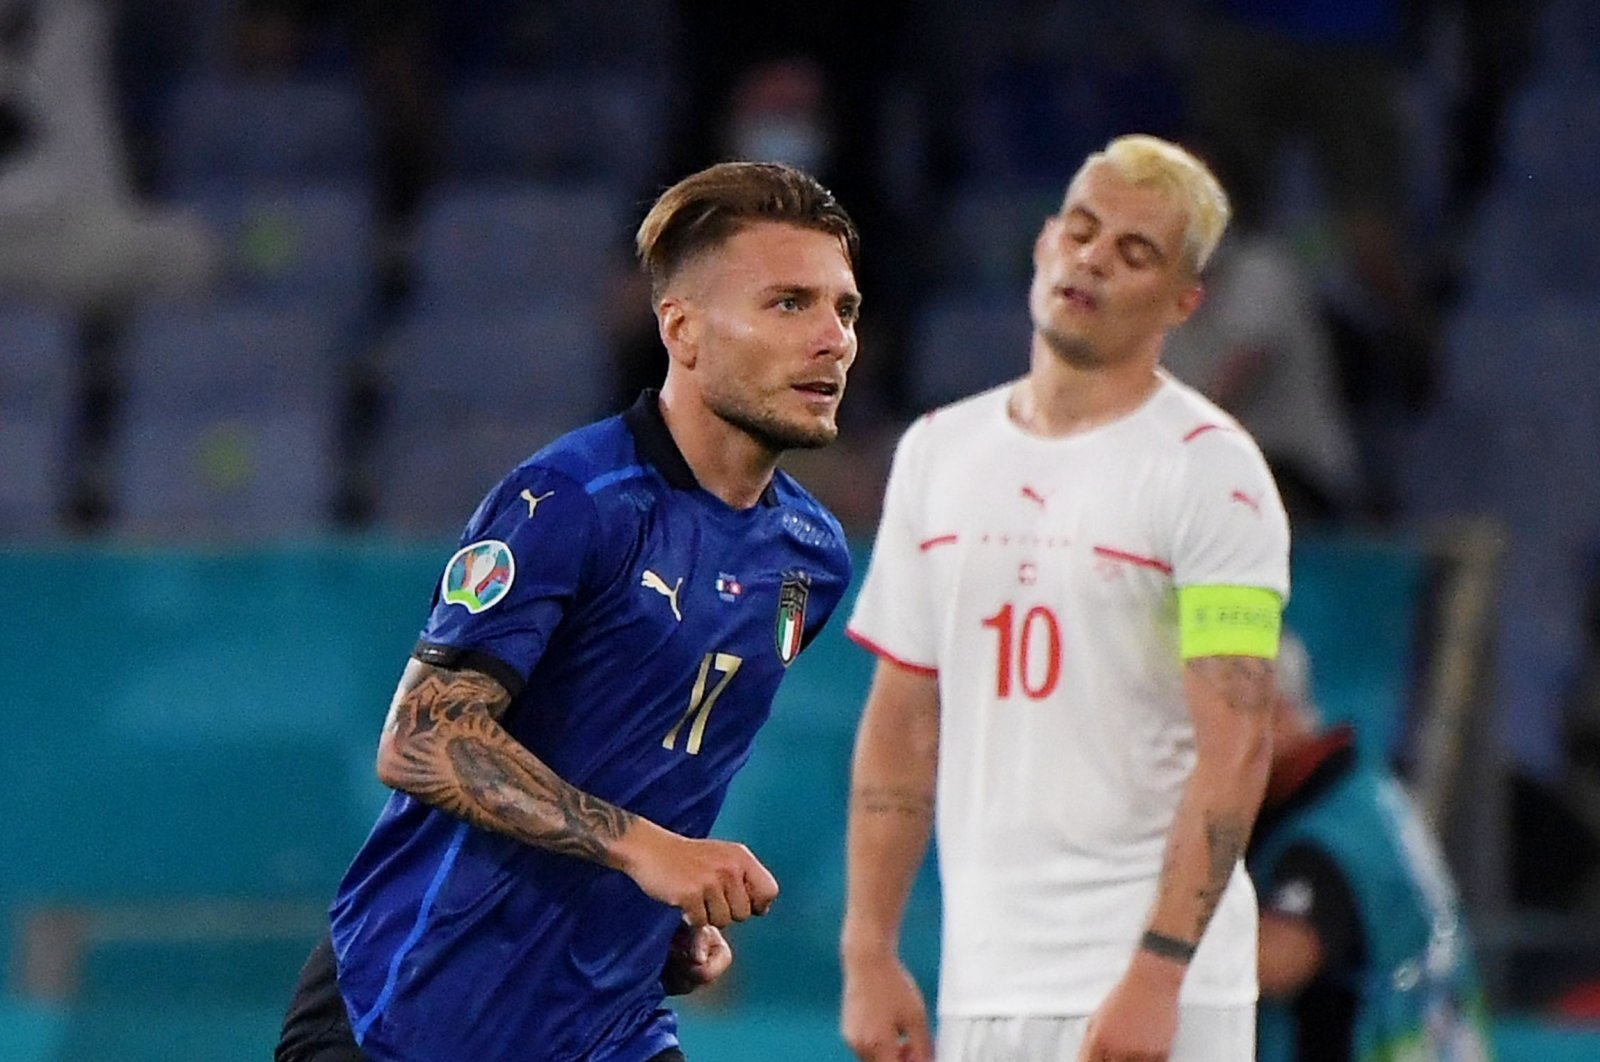 Italy's Ciro Immobile celebrates scoring their third goal in the Euro2020 Group A football match between Italy and Switzerland, Stadio Olimpico, Rome, Italy, June 16, 2021. (Reuters Photo)